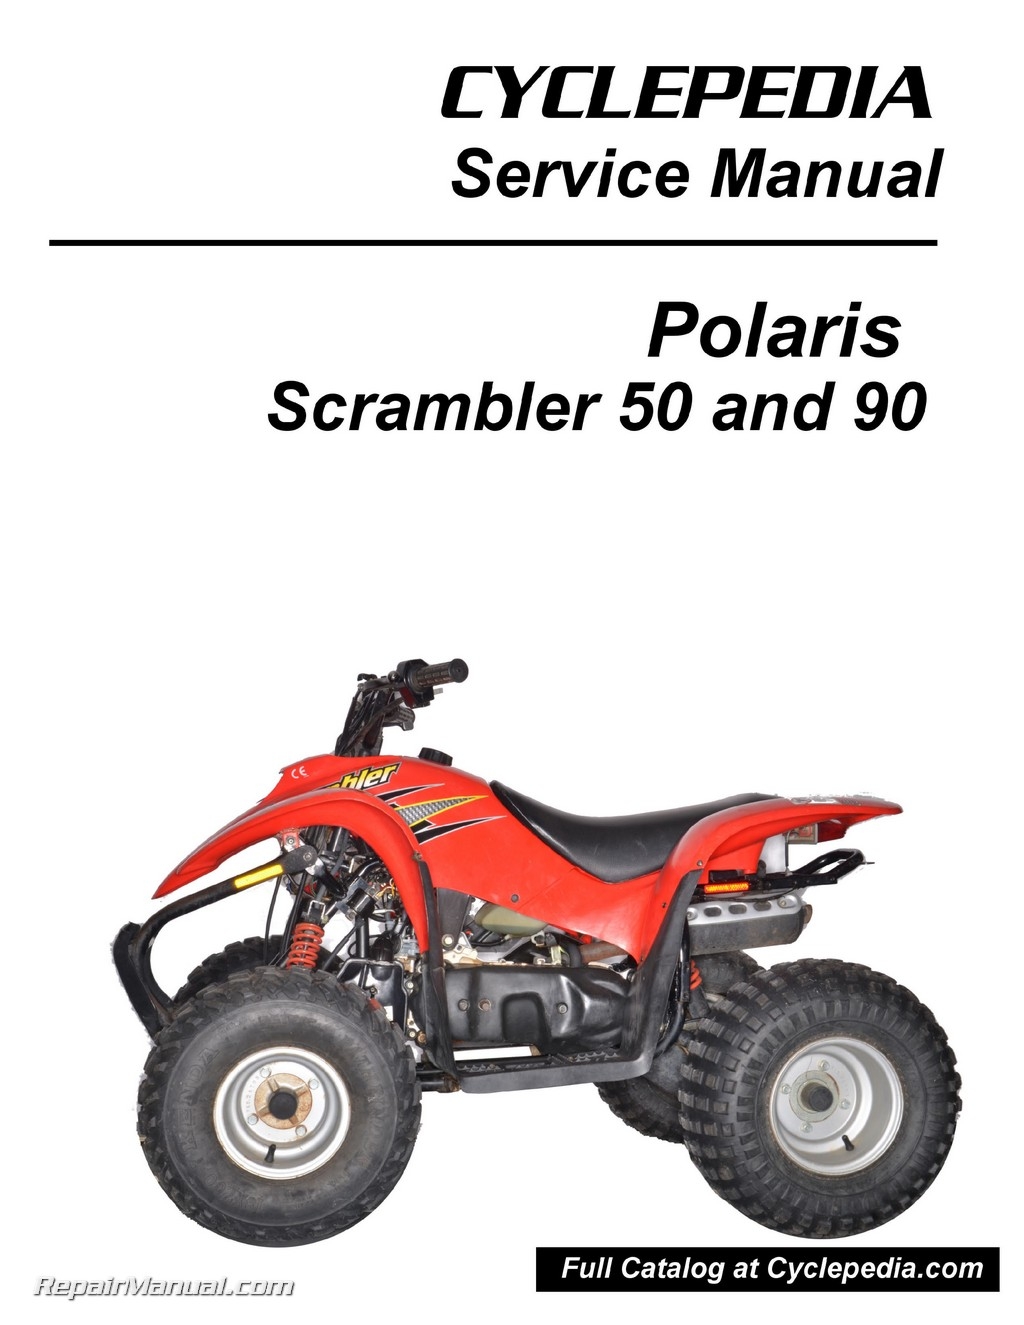 Cb484bb Arctic Cat All Models Atv 400 400 Cr Service Manuals 2013 Wiring Library